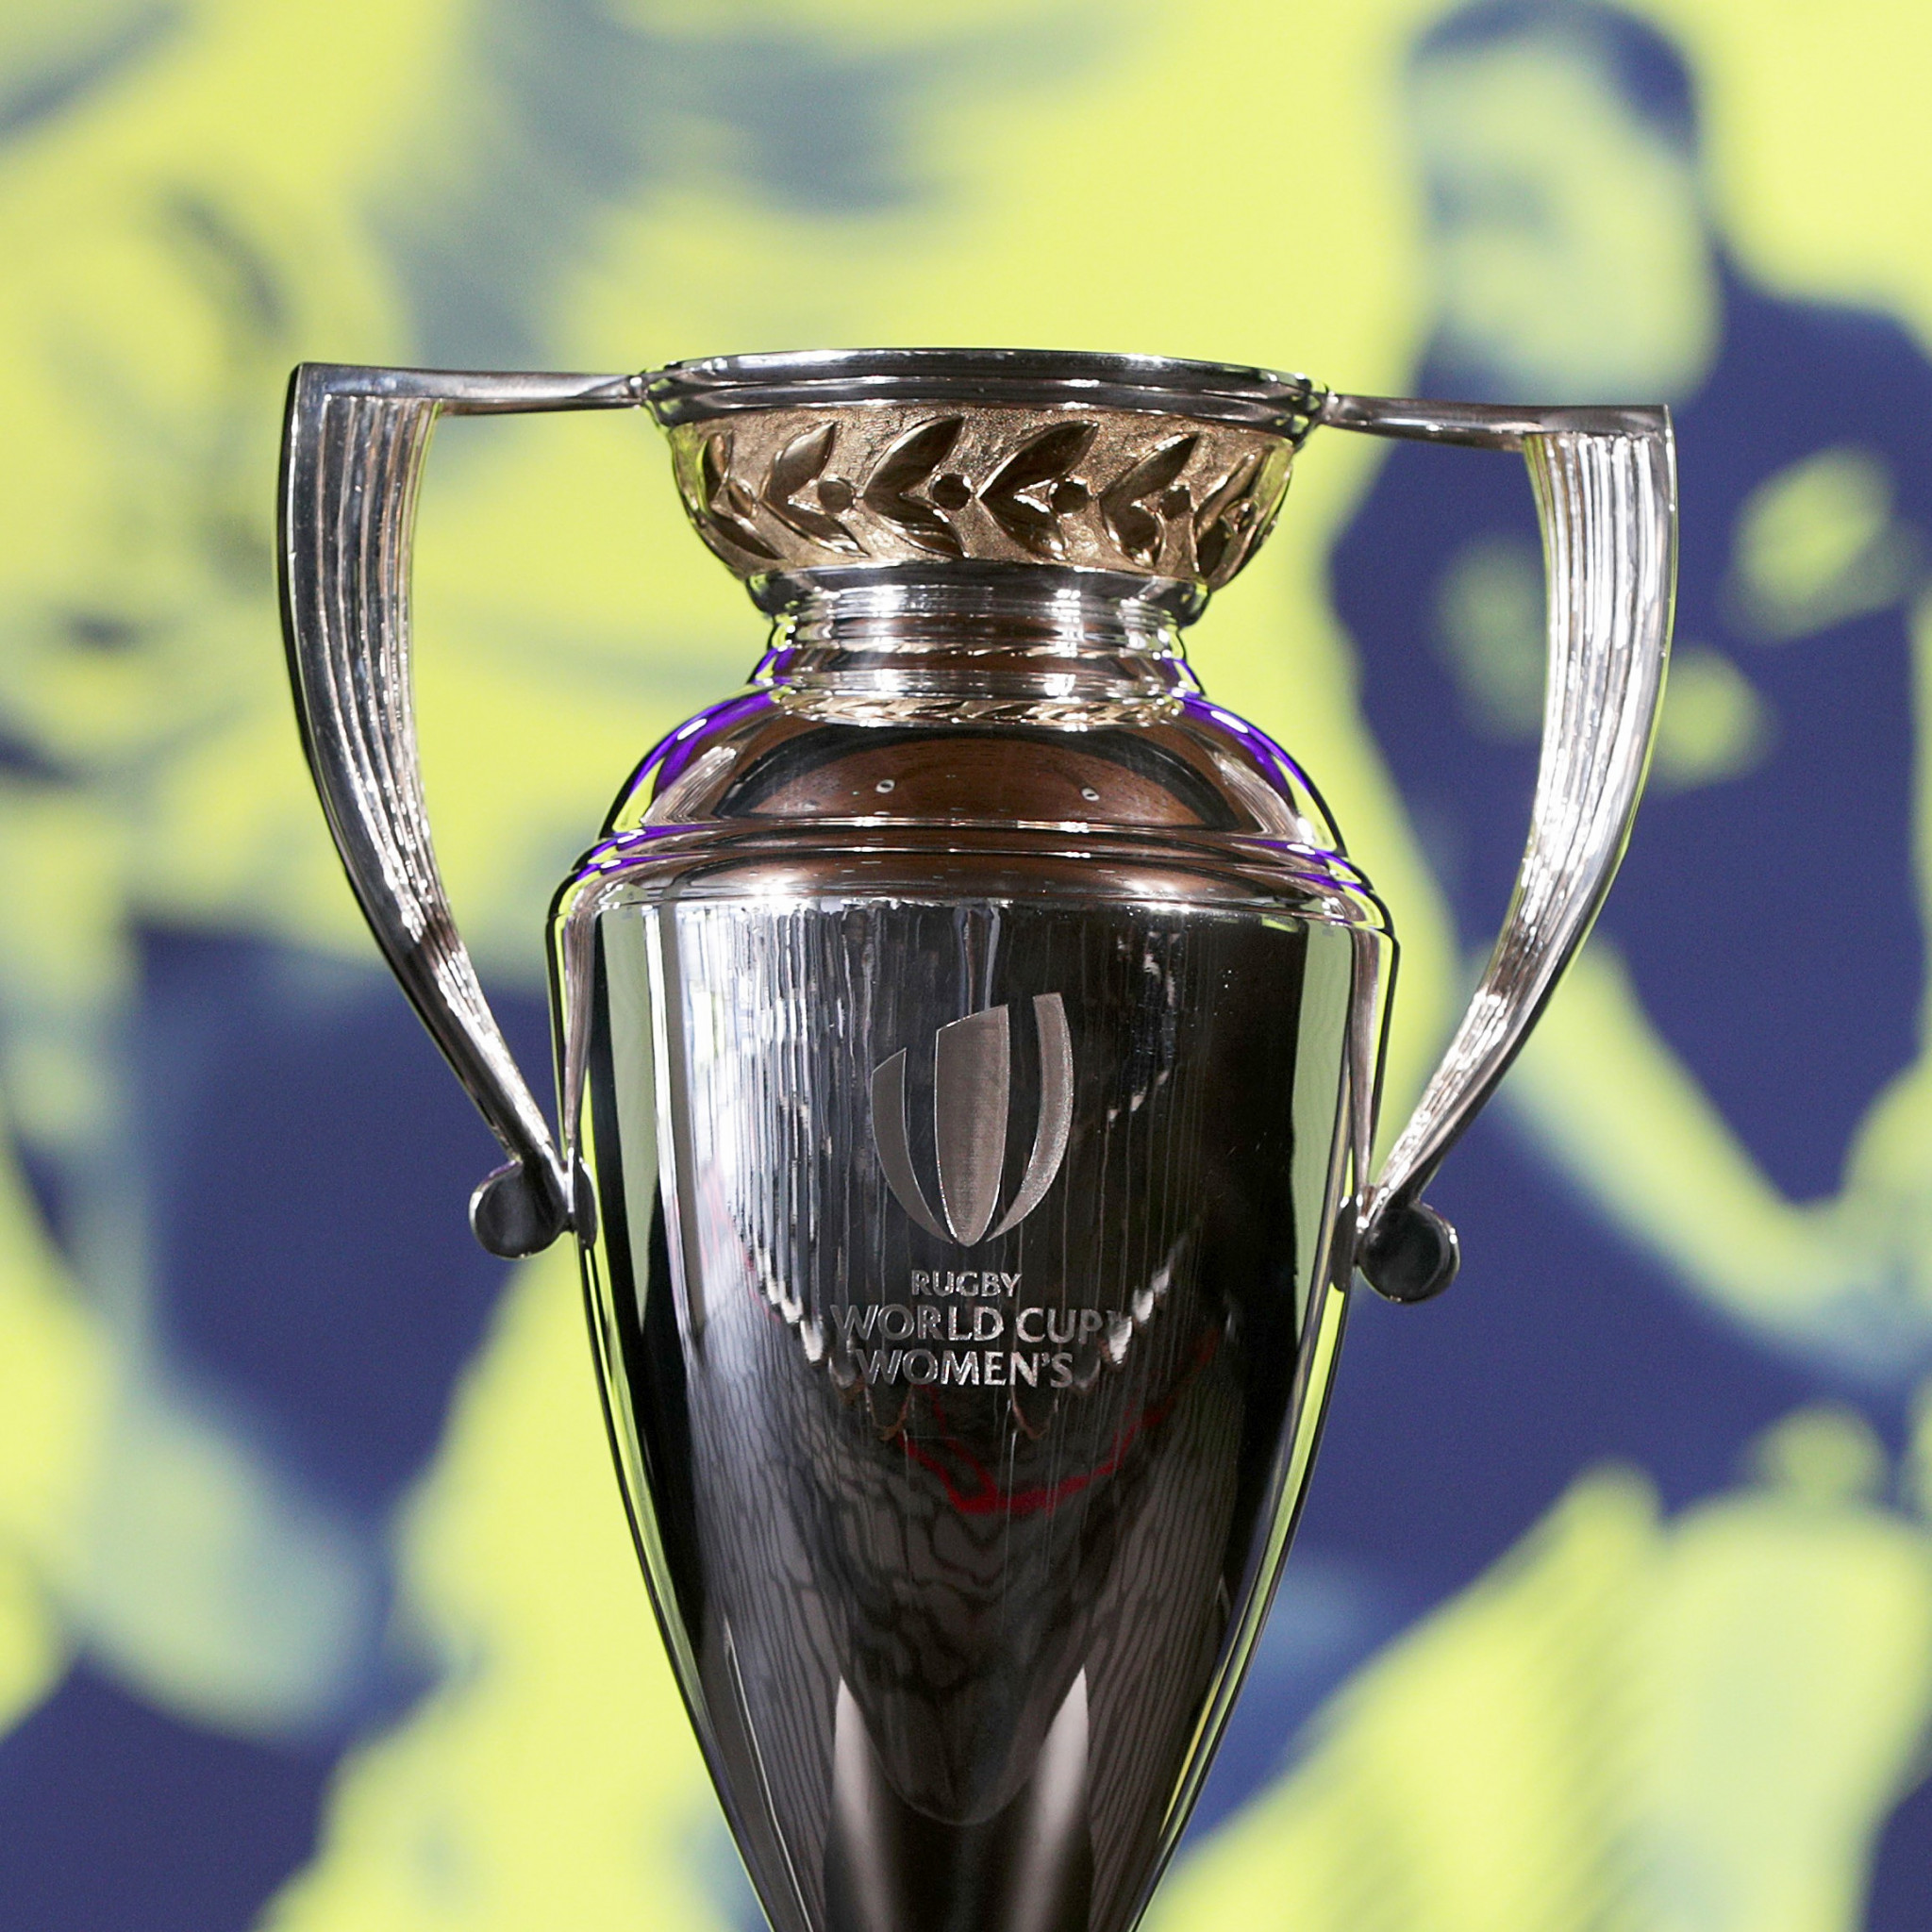 Delayed European qualifier for women's Rugby World Cup set for Parma in September